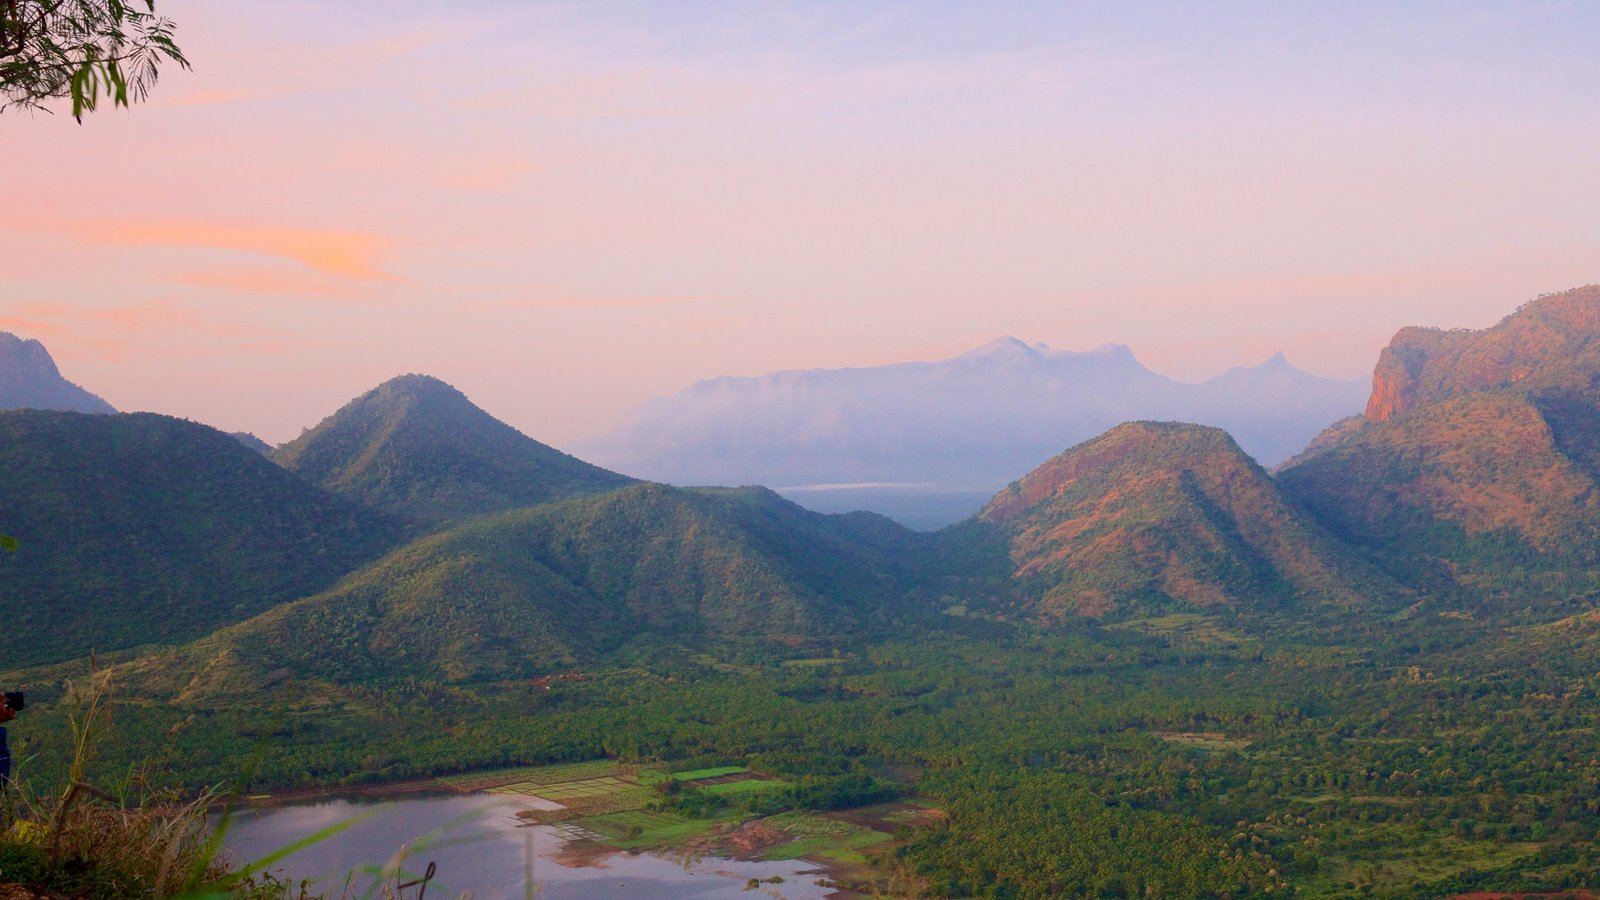 Kodaikanal which includes mountains, tranquil scenes and landscape views